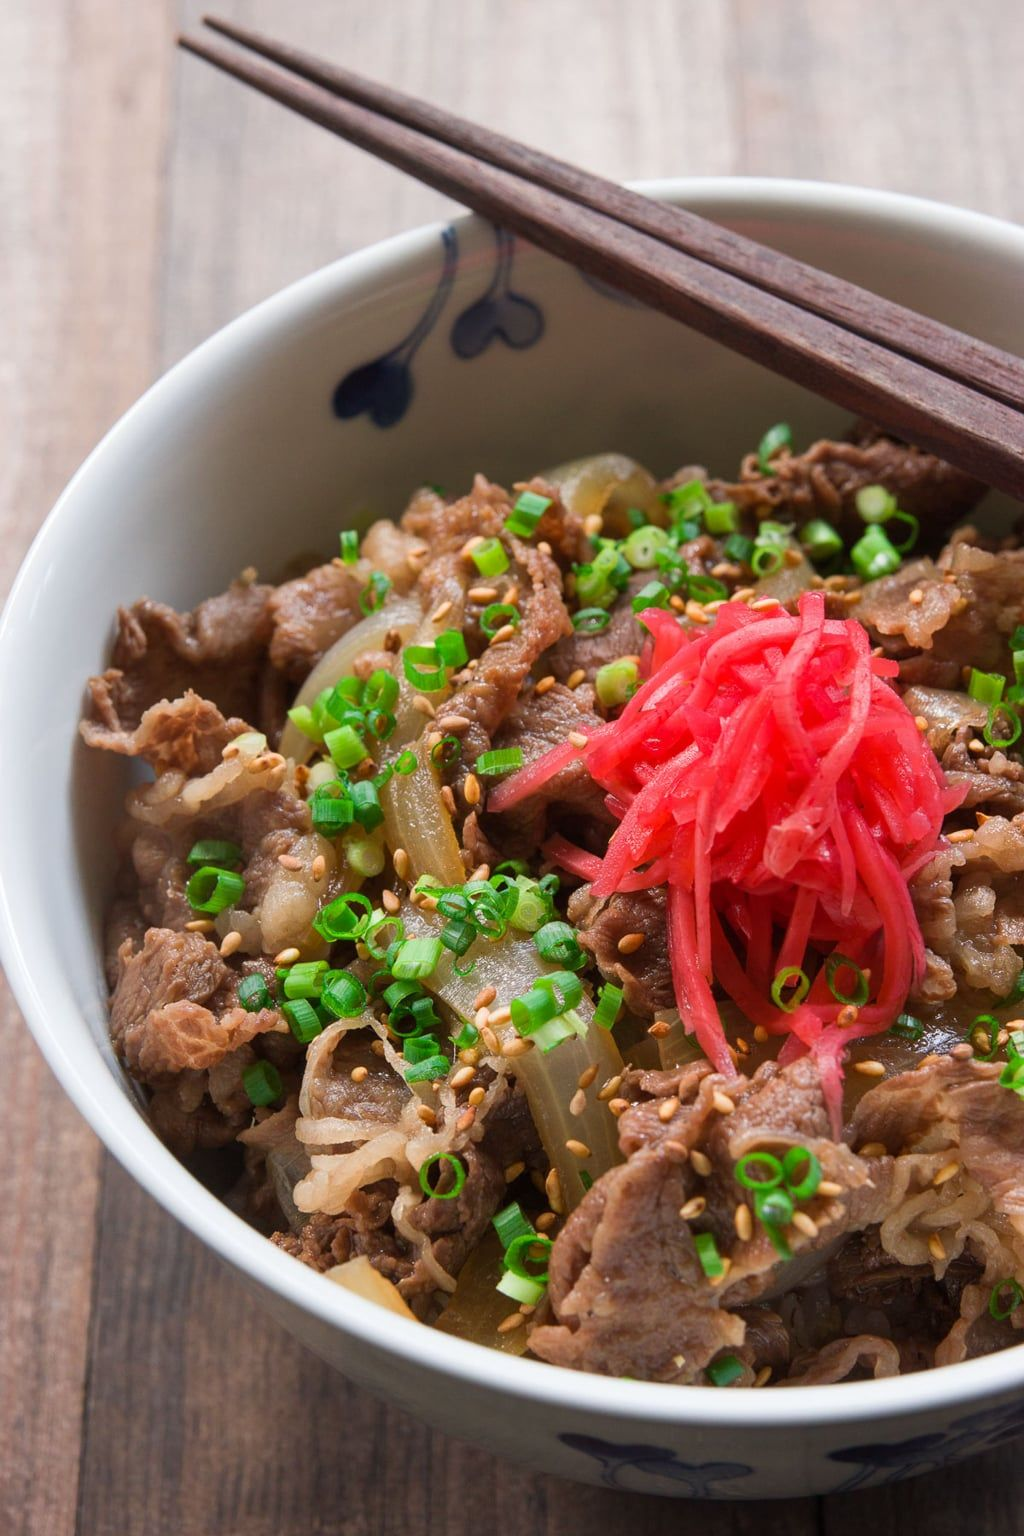 Gyudon Recipe Japanese Beef And Rice Bowl 牛丼 Recipe Beef Bowl Recipe Yoshinoya Beef Bowl Recipe Beef Bowls